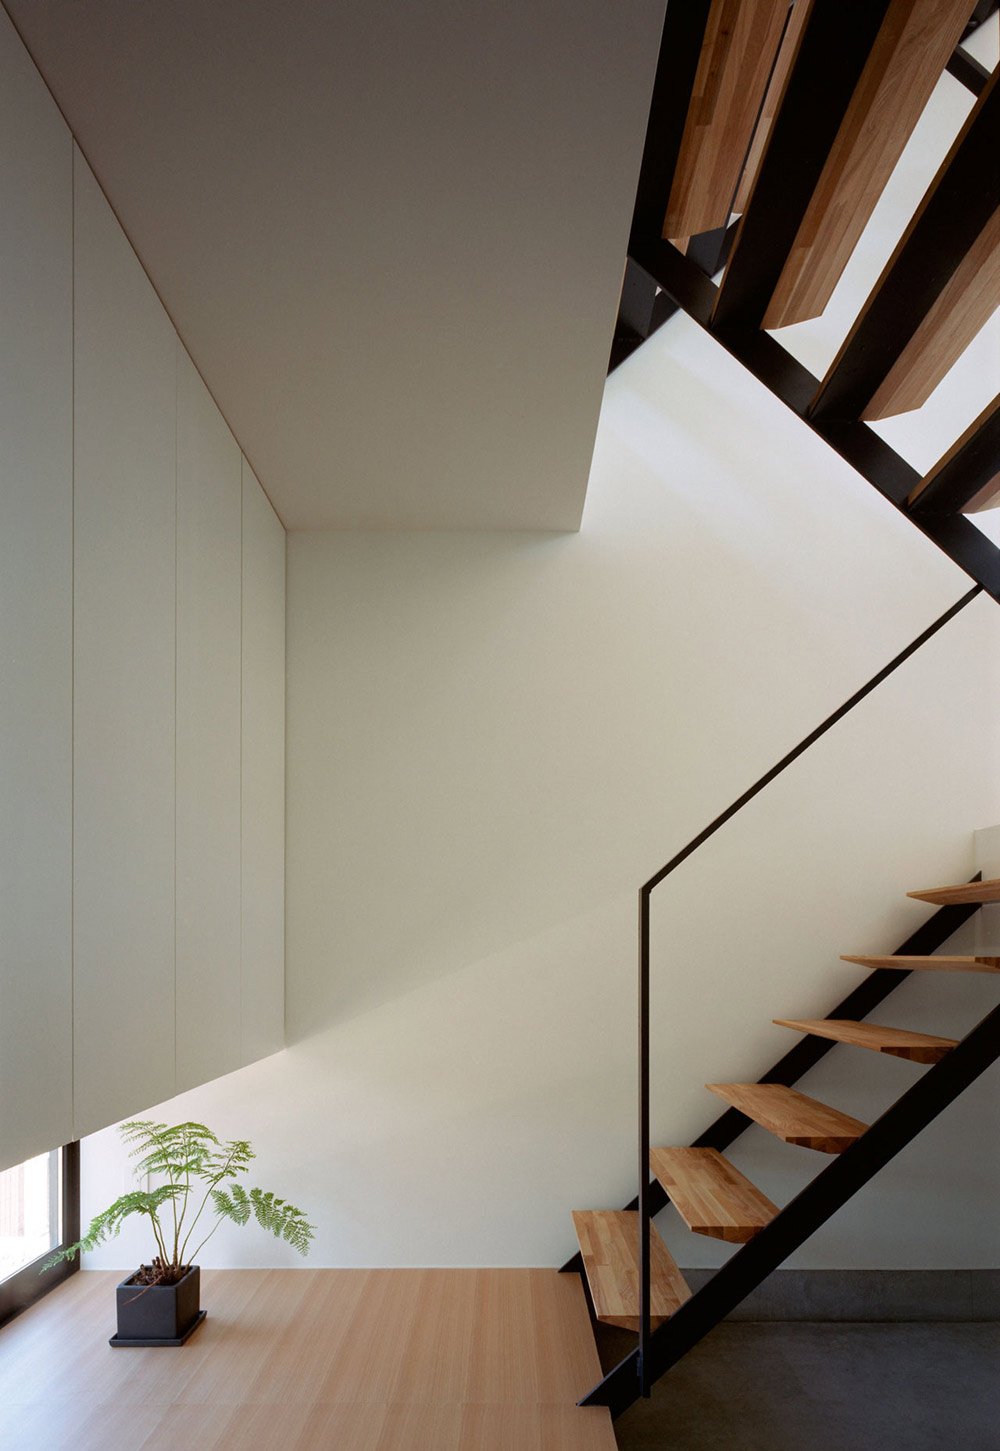 Stairs, Outotunoie Fujieda, Japan by mA-style Architects